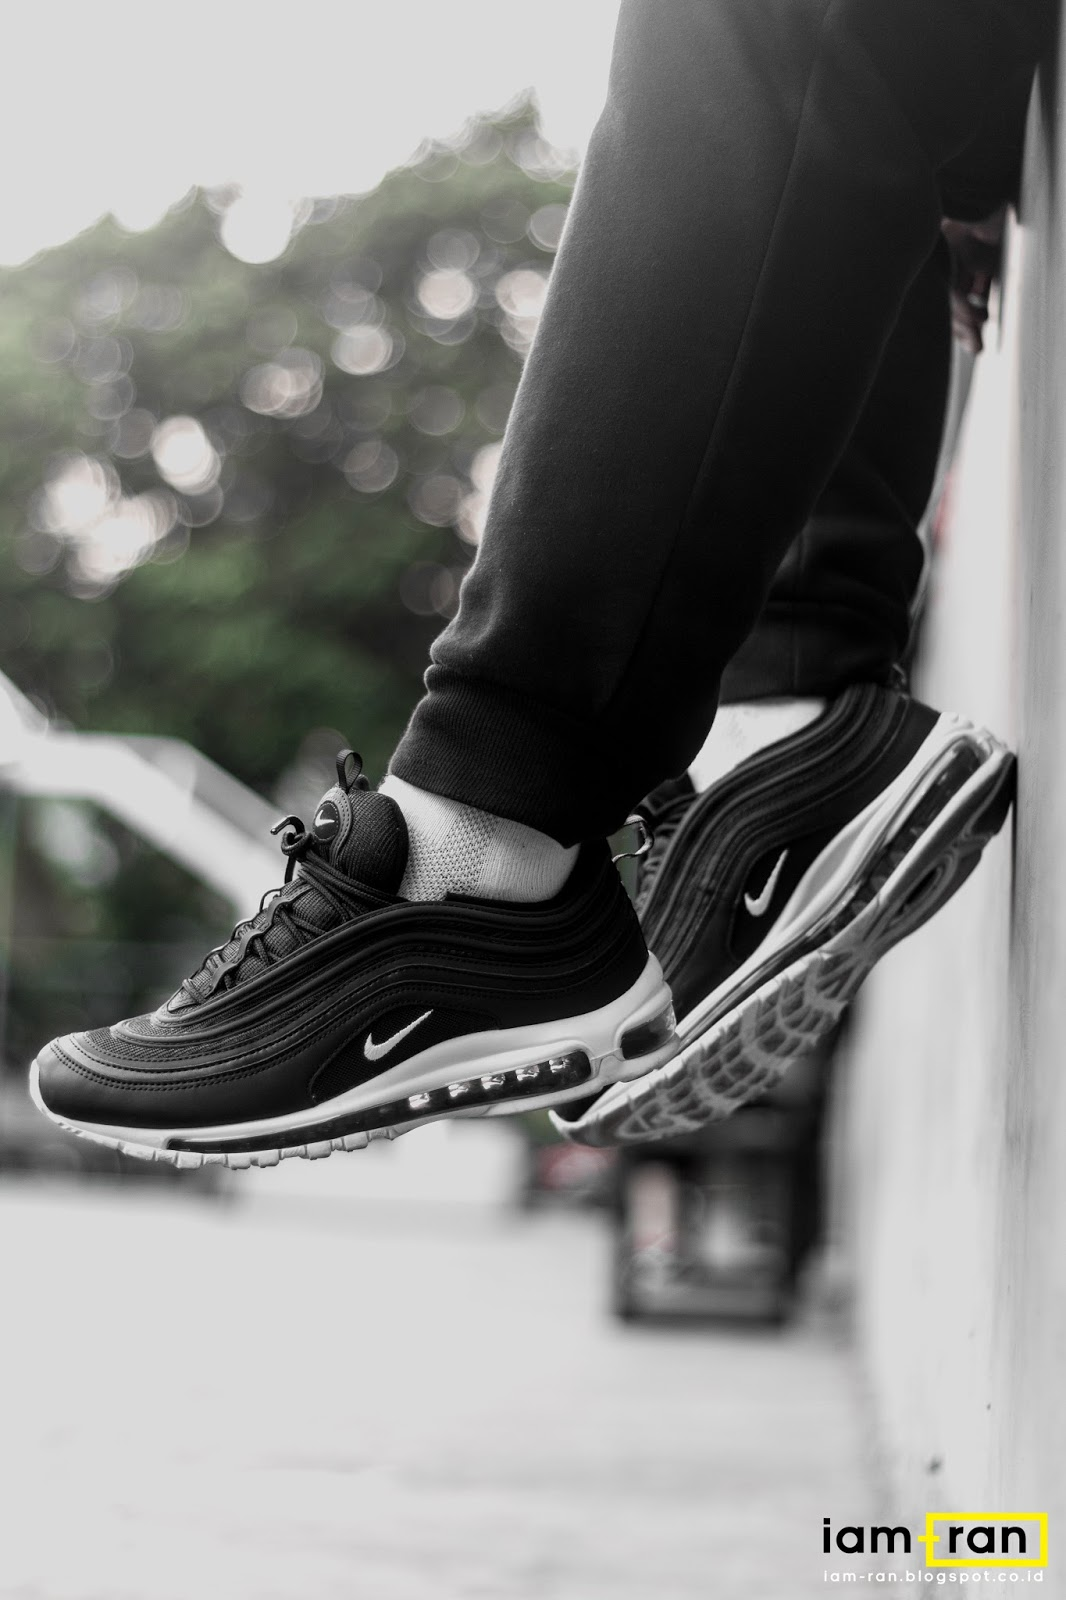 cilindro mando Conmemorativo  IAM-RAN: ON FEET : Zulfikar Ali - Nike air max 97 Black and White